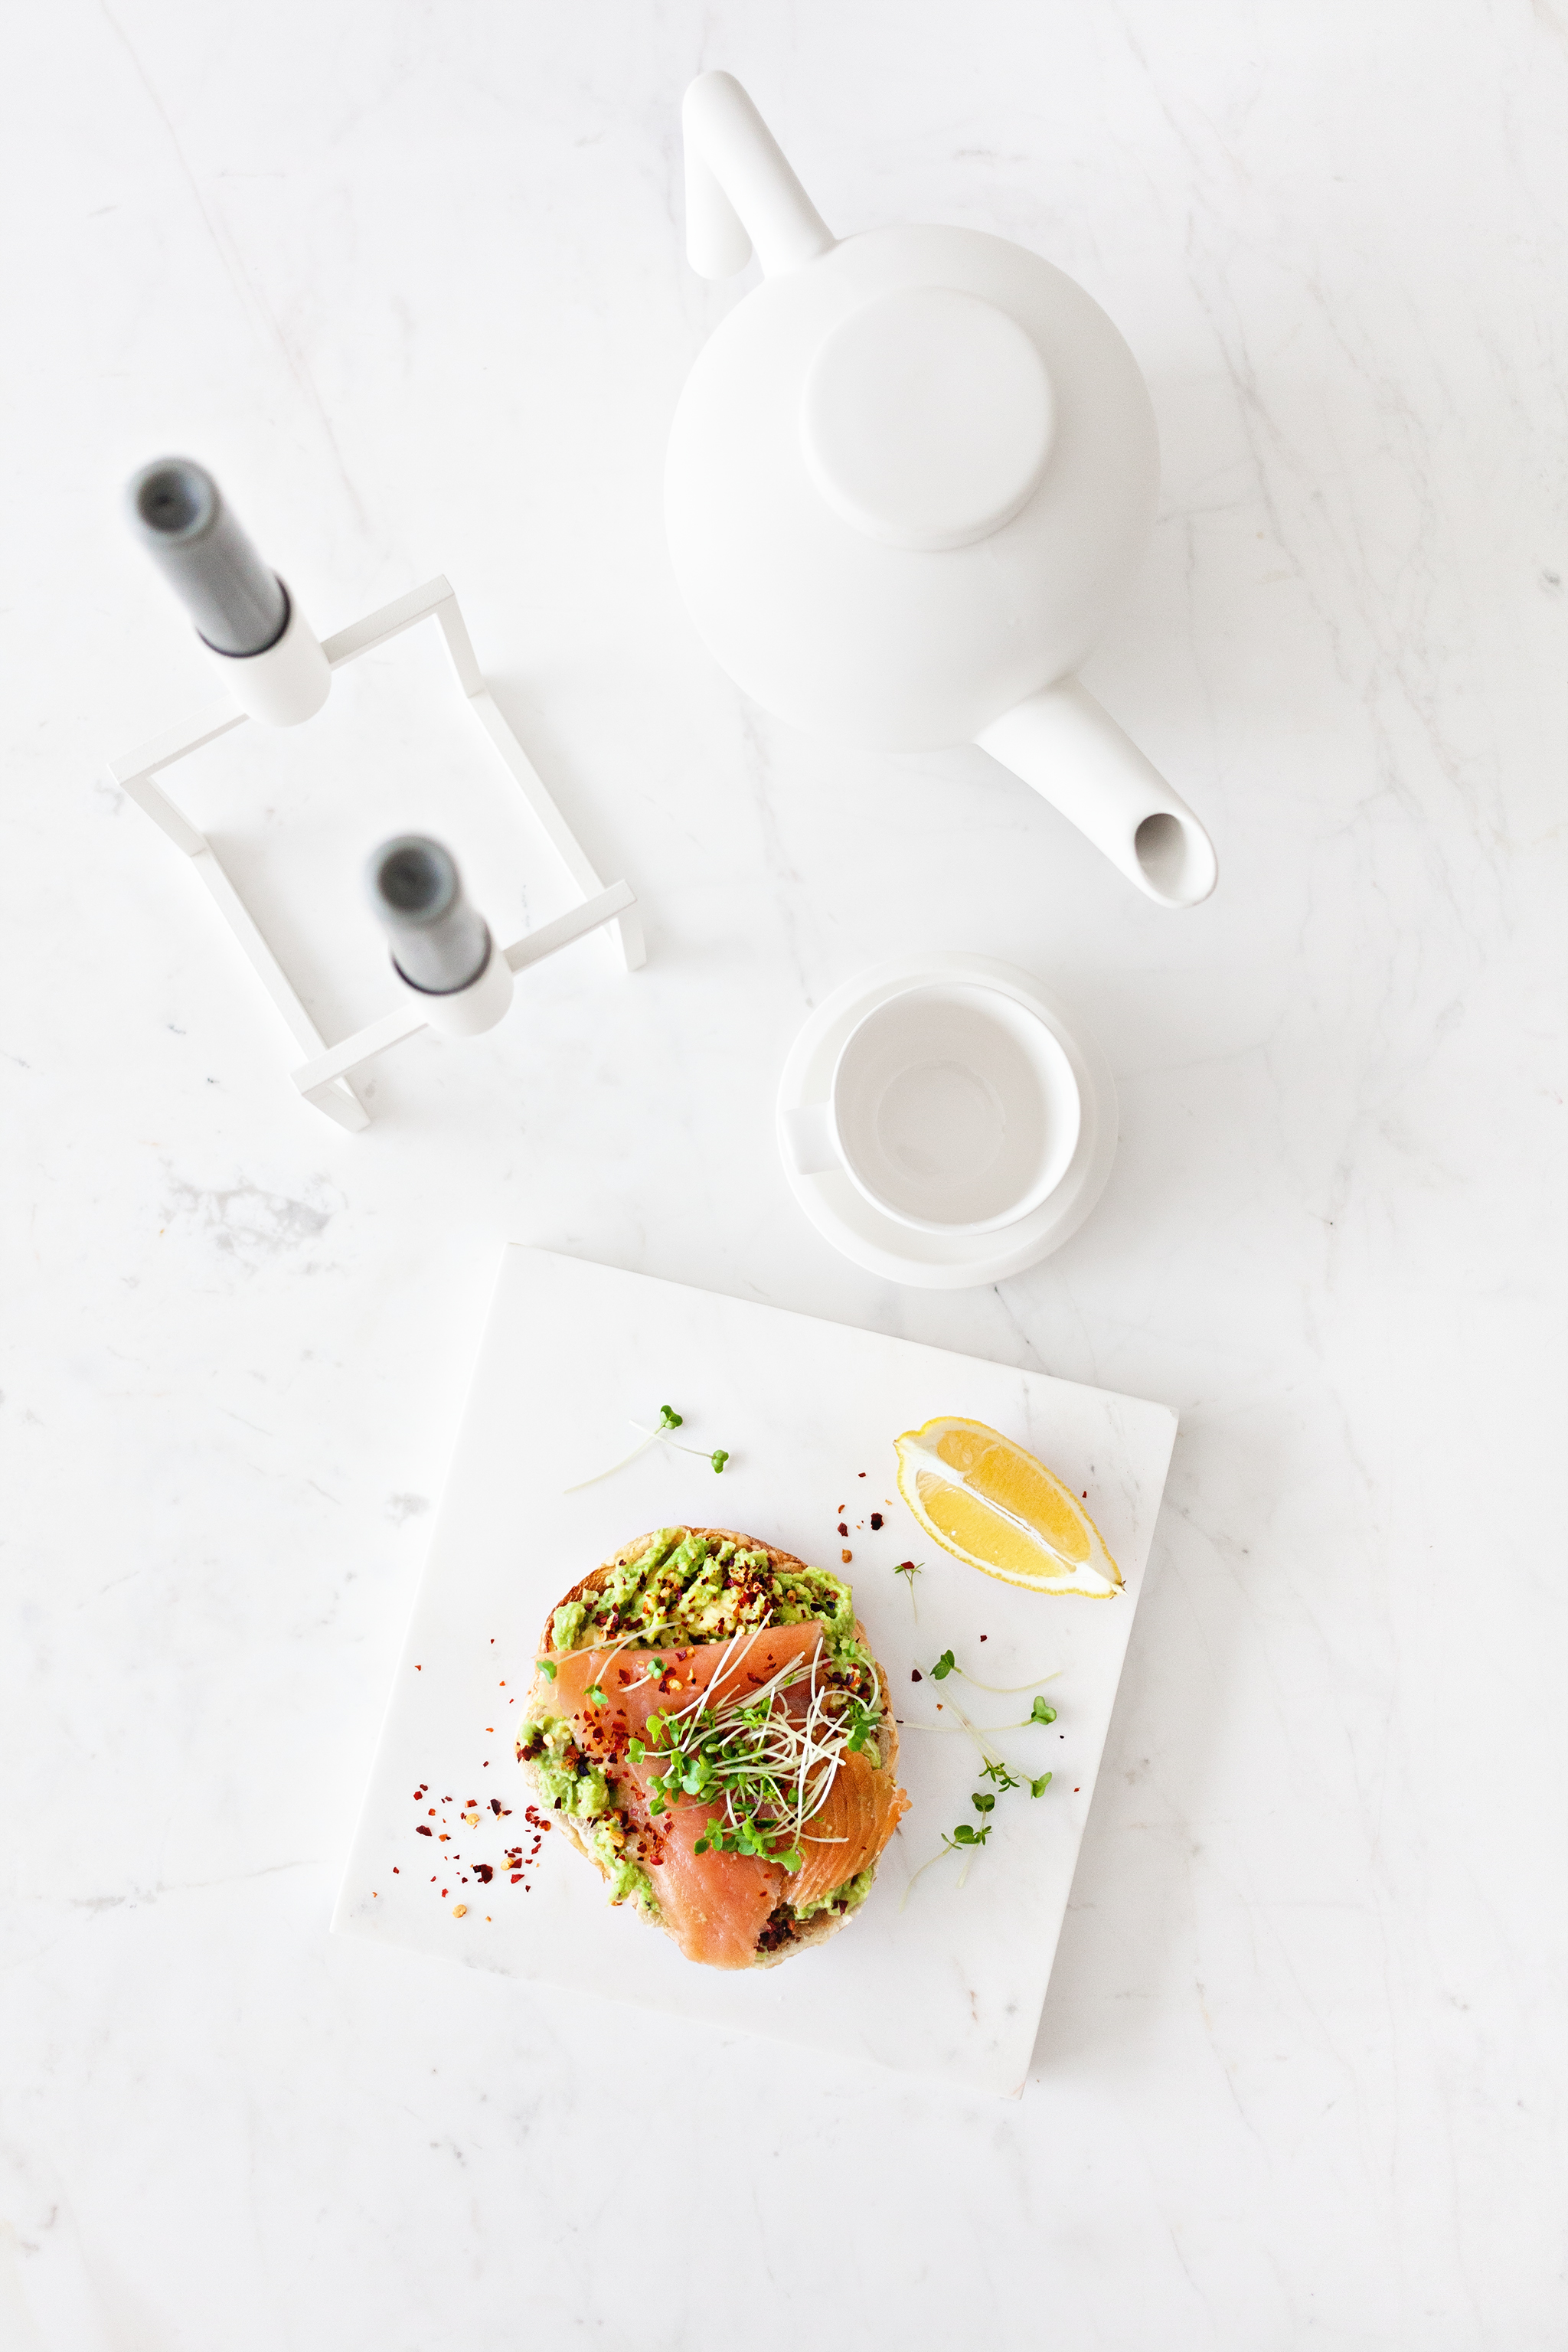 Avocado with Chilli & Smoked Salmon on Toasted Bagels | Marble Table and Marble Serverware from  Serax Belgium  | Kubus Line by ByLassen